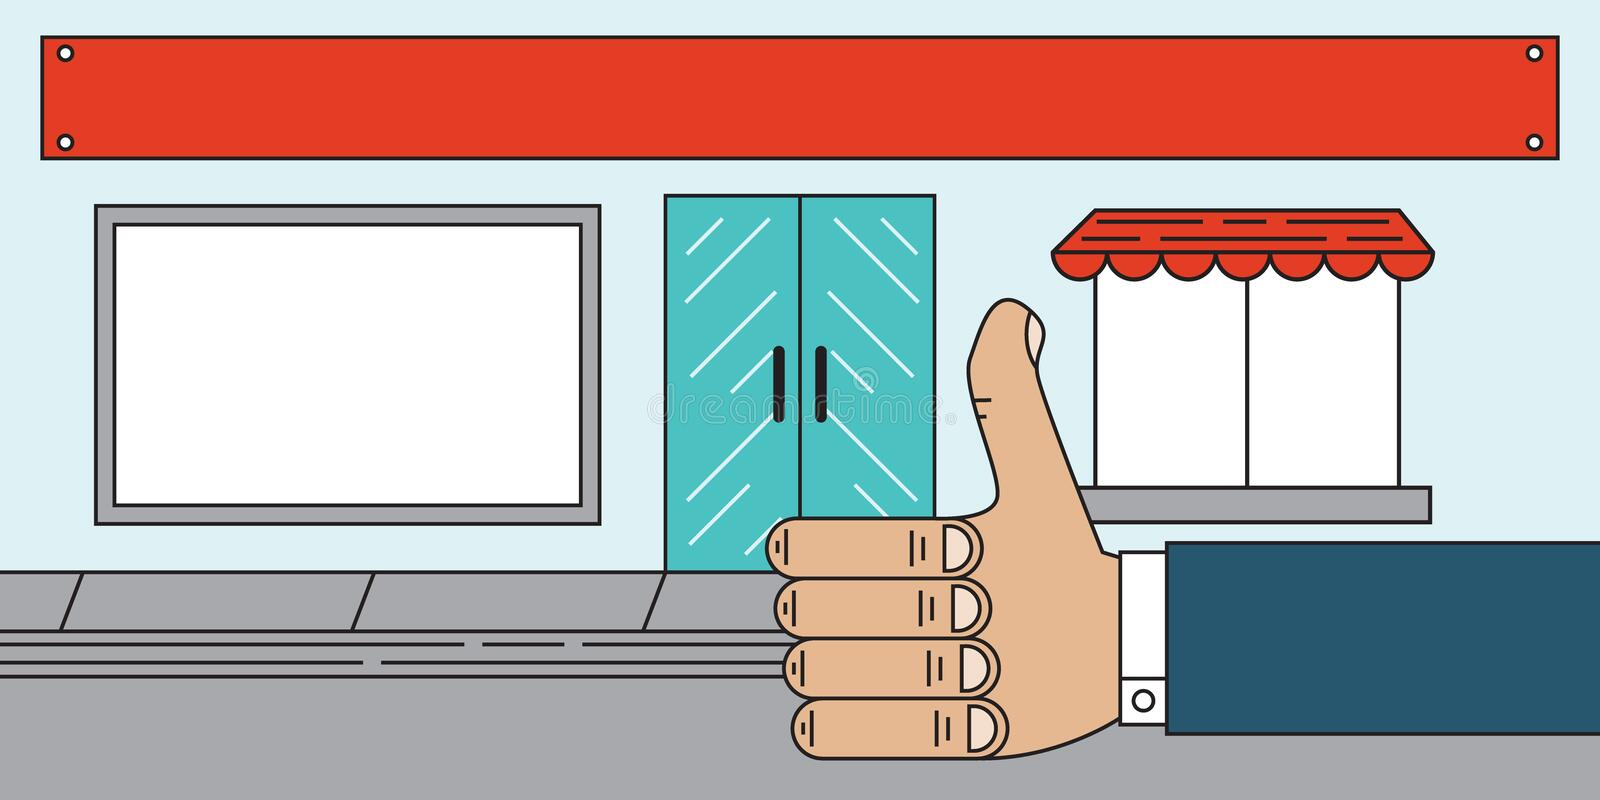 Stockez Front Sales Agency Thumbs Up illustration stock